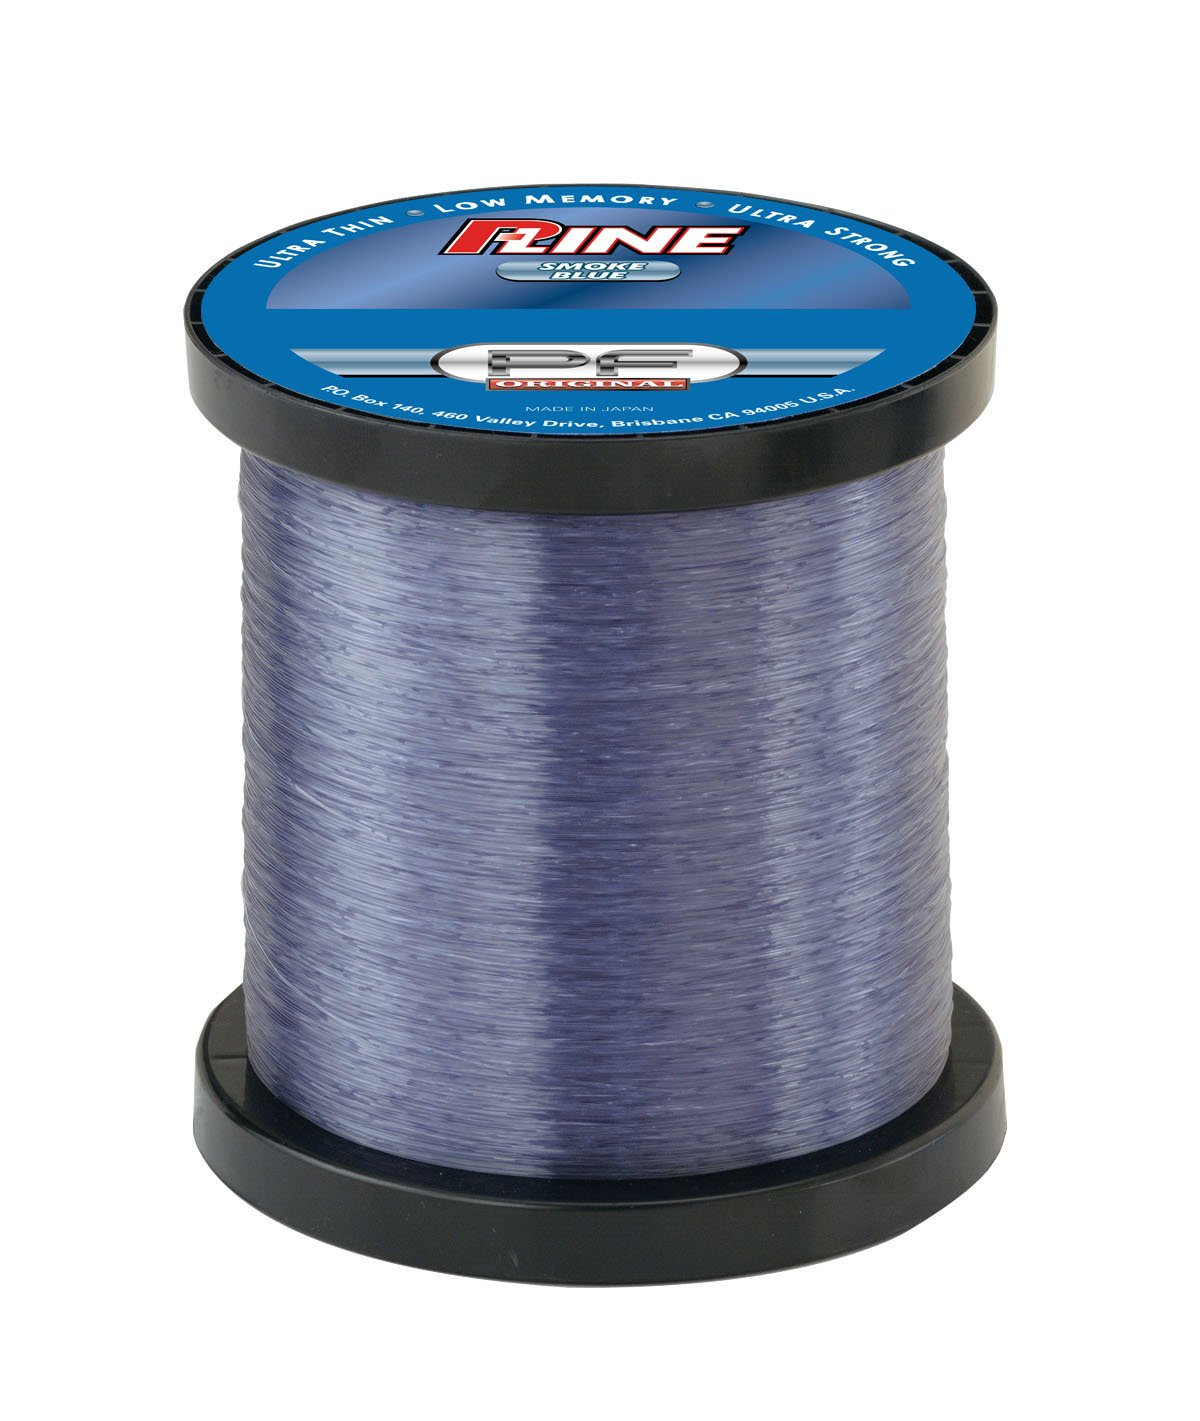 P-Line Original Copolymer Fishing Line Bulk Spool